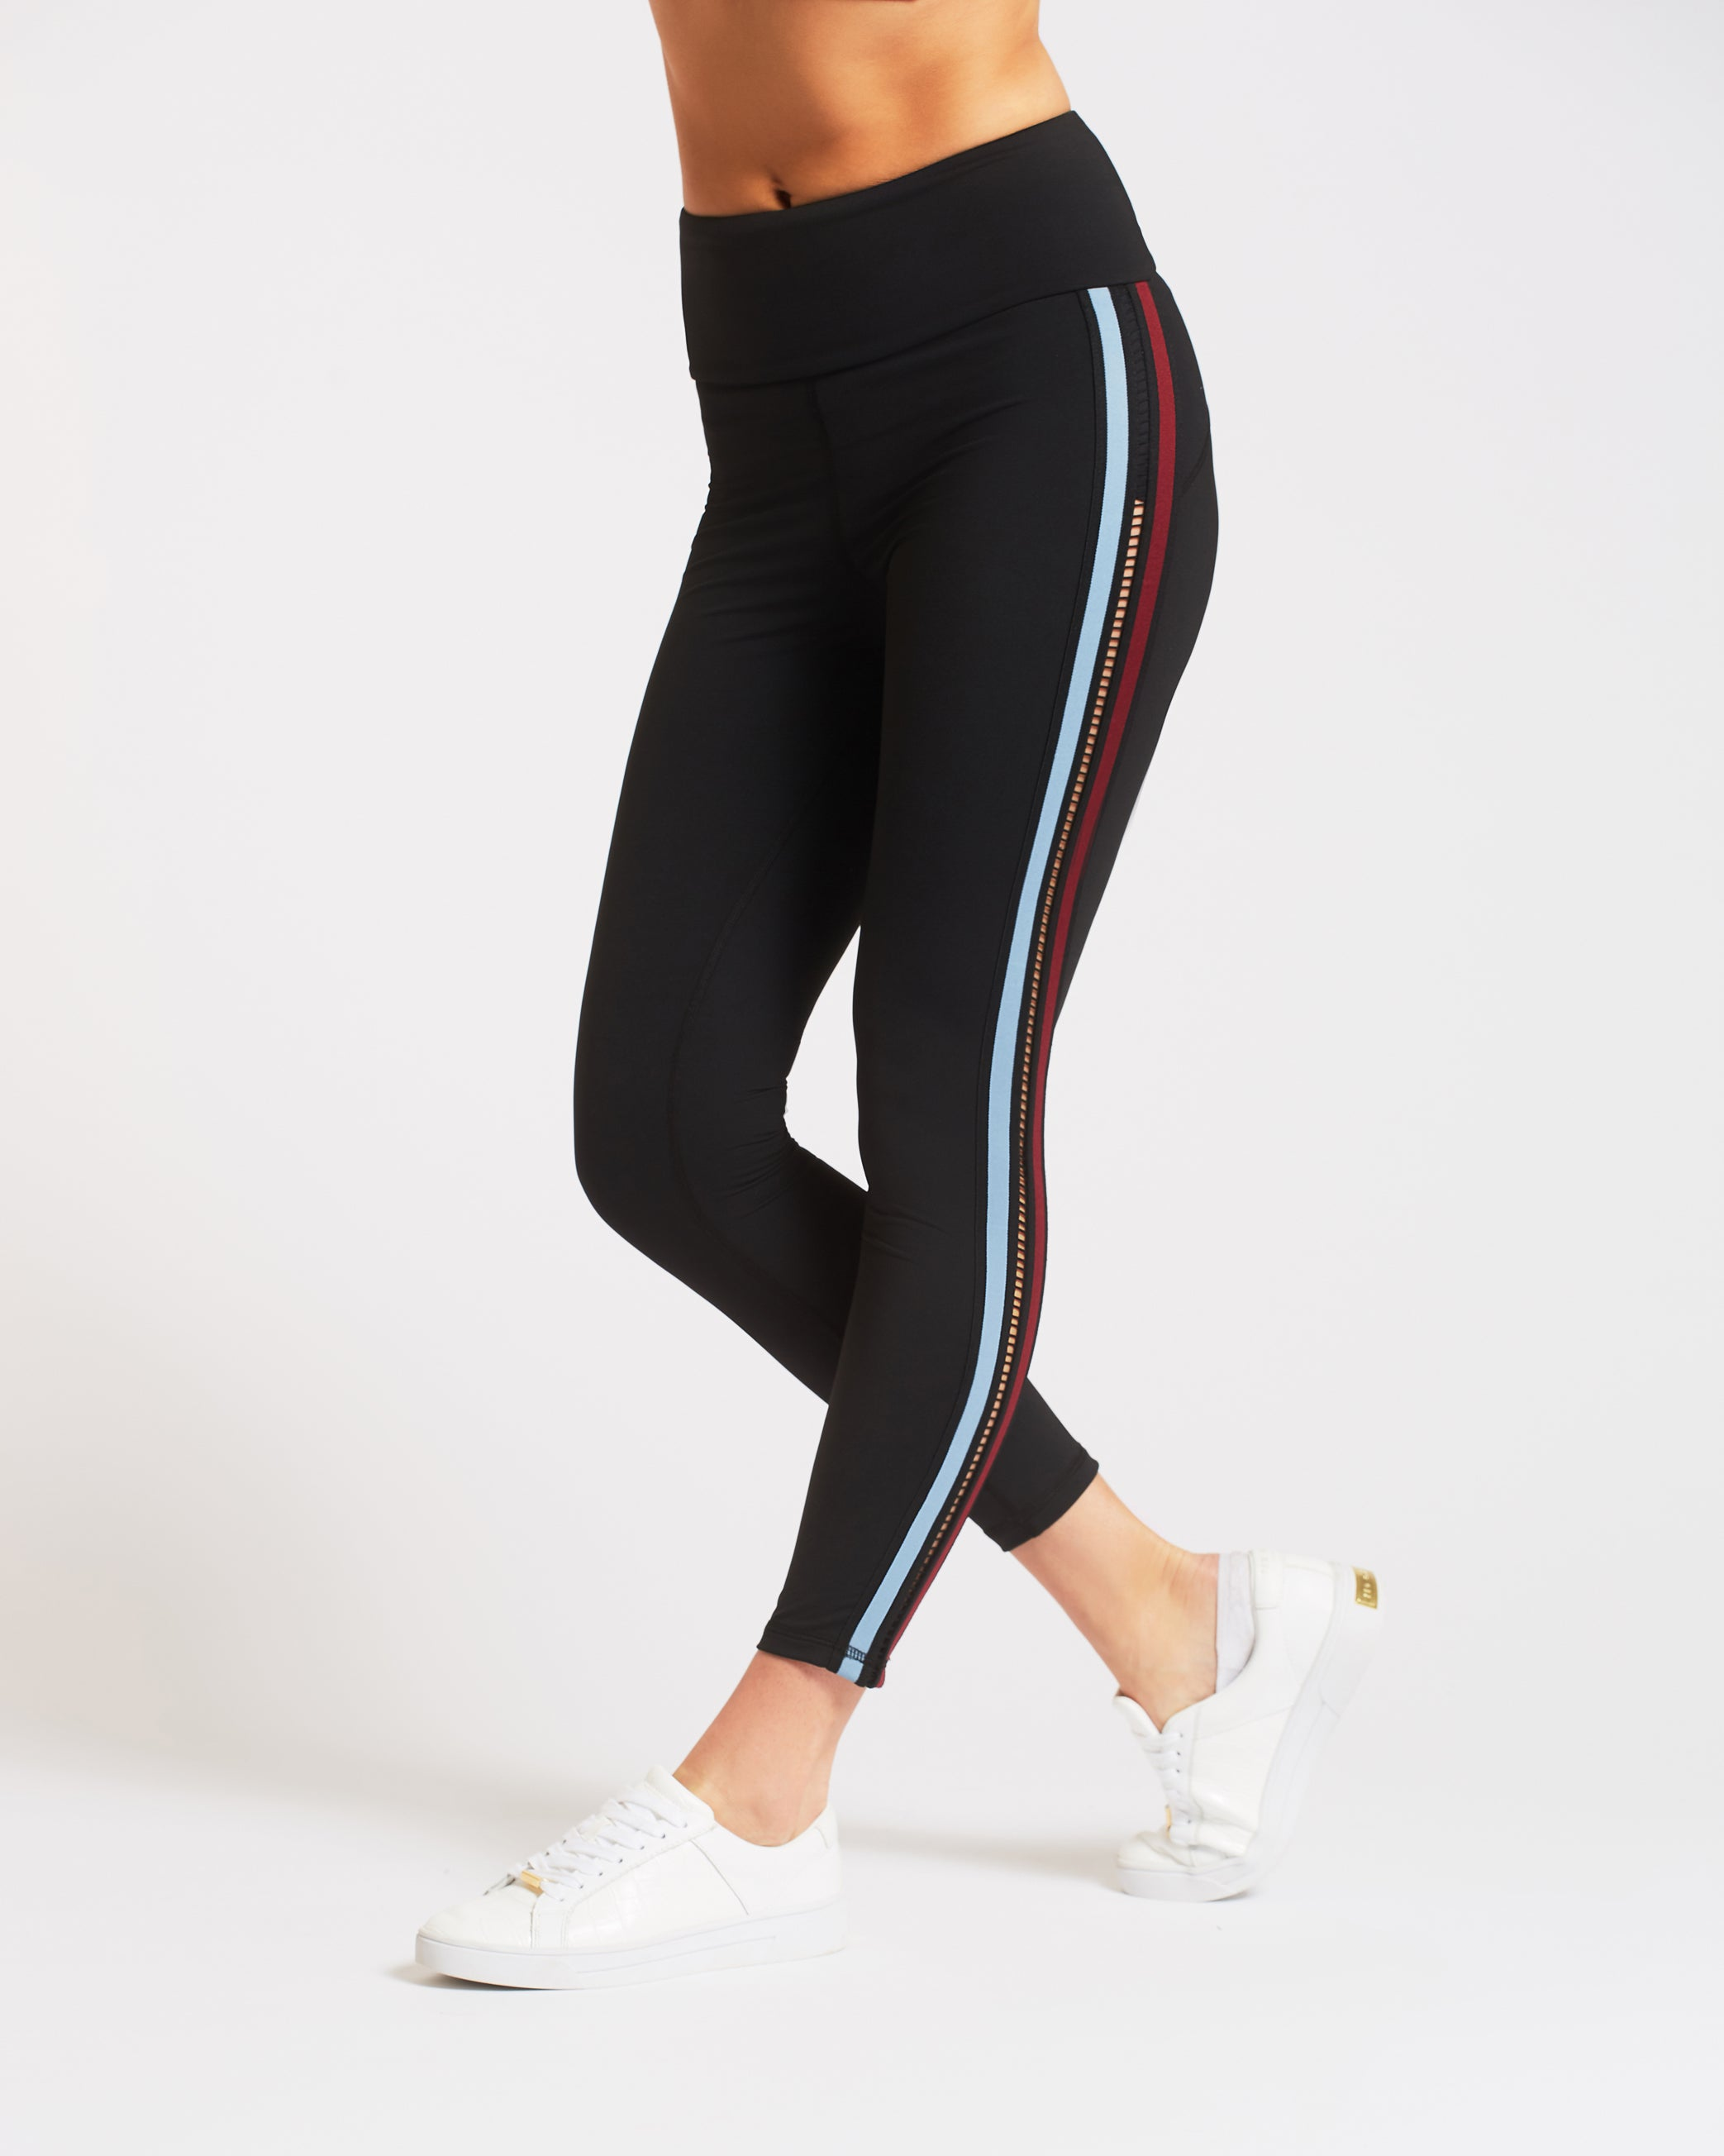 le-mans-high-waisted-legging-black-wine-storm-blue